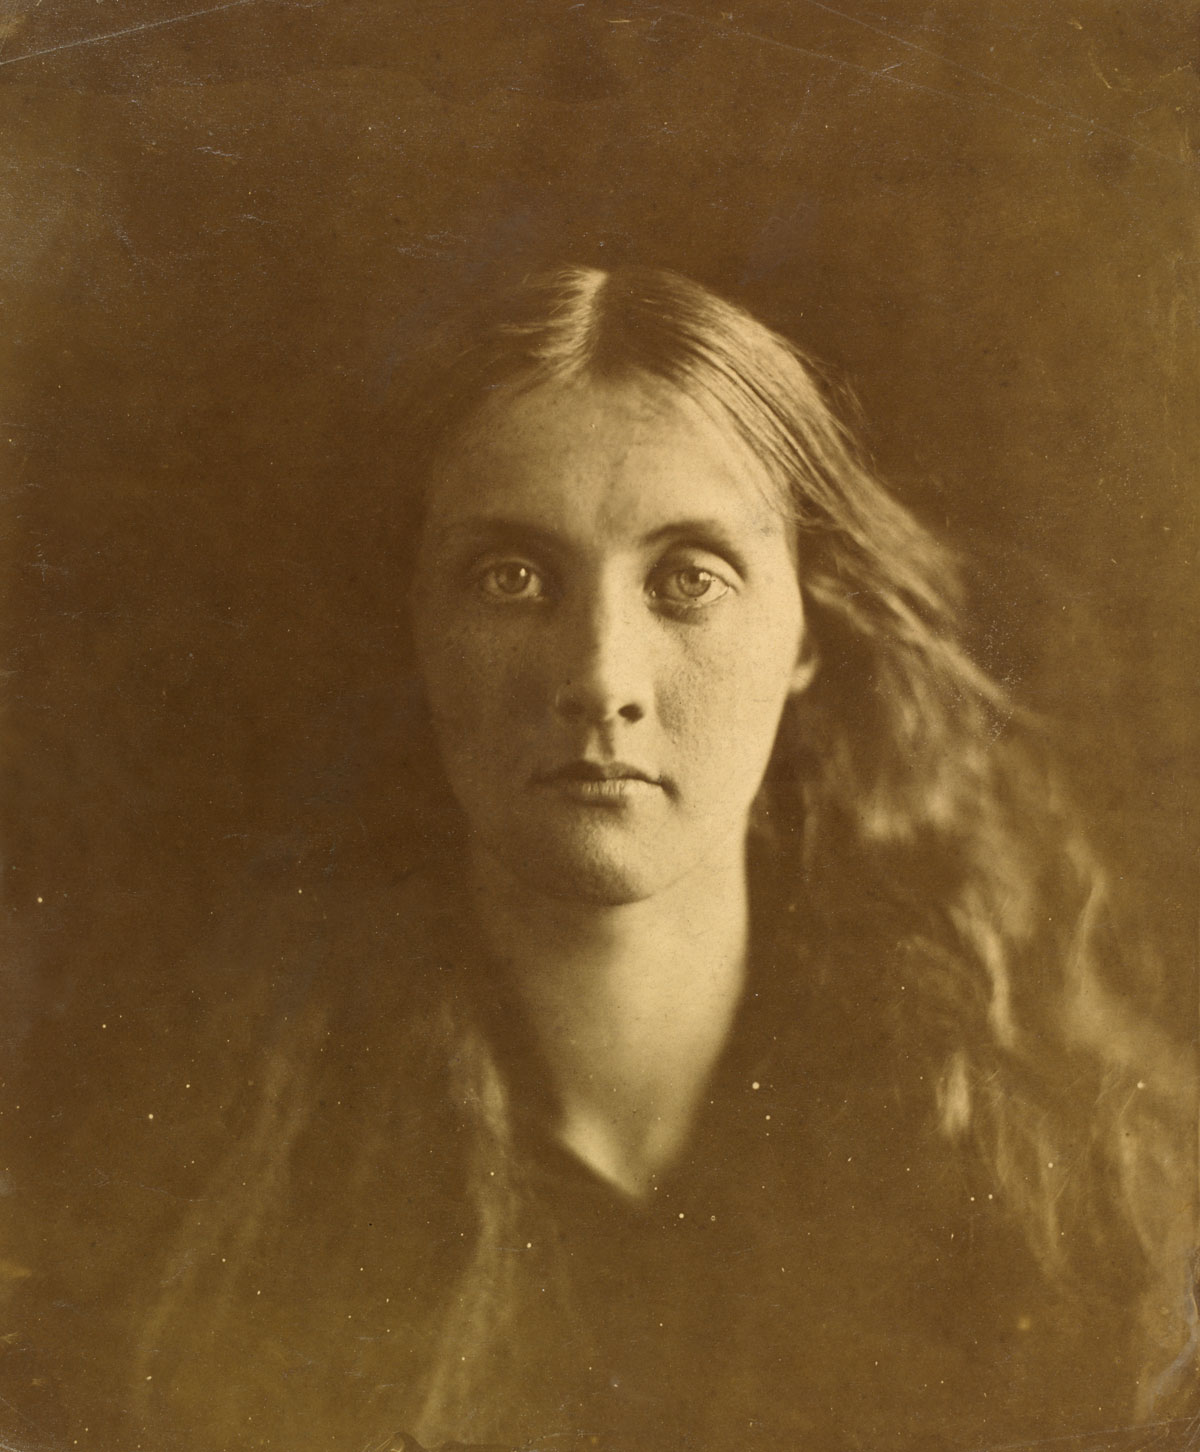 6 Women That Changed Photography